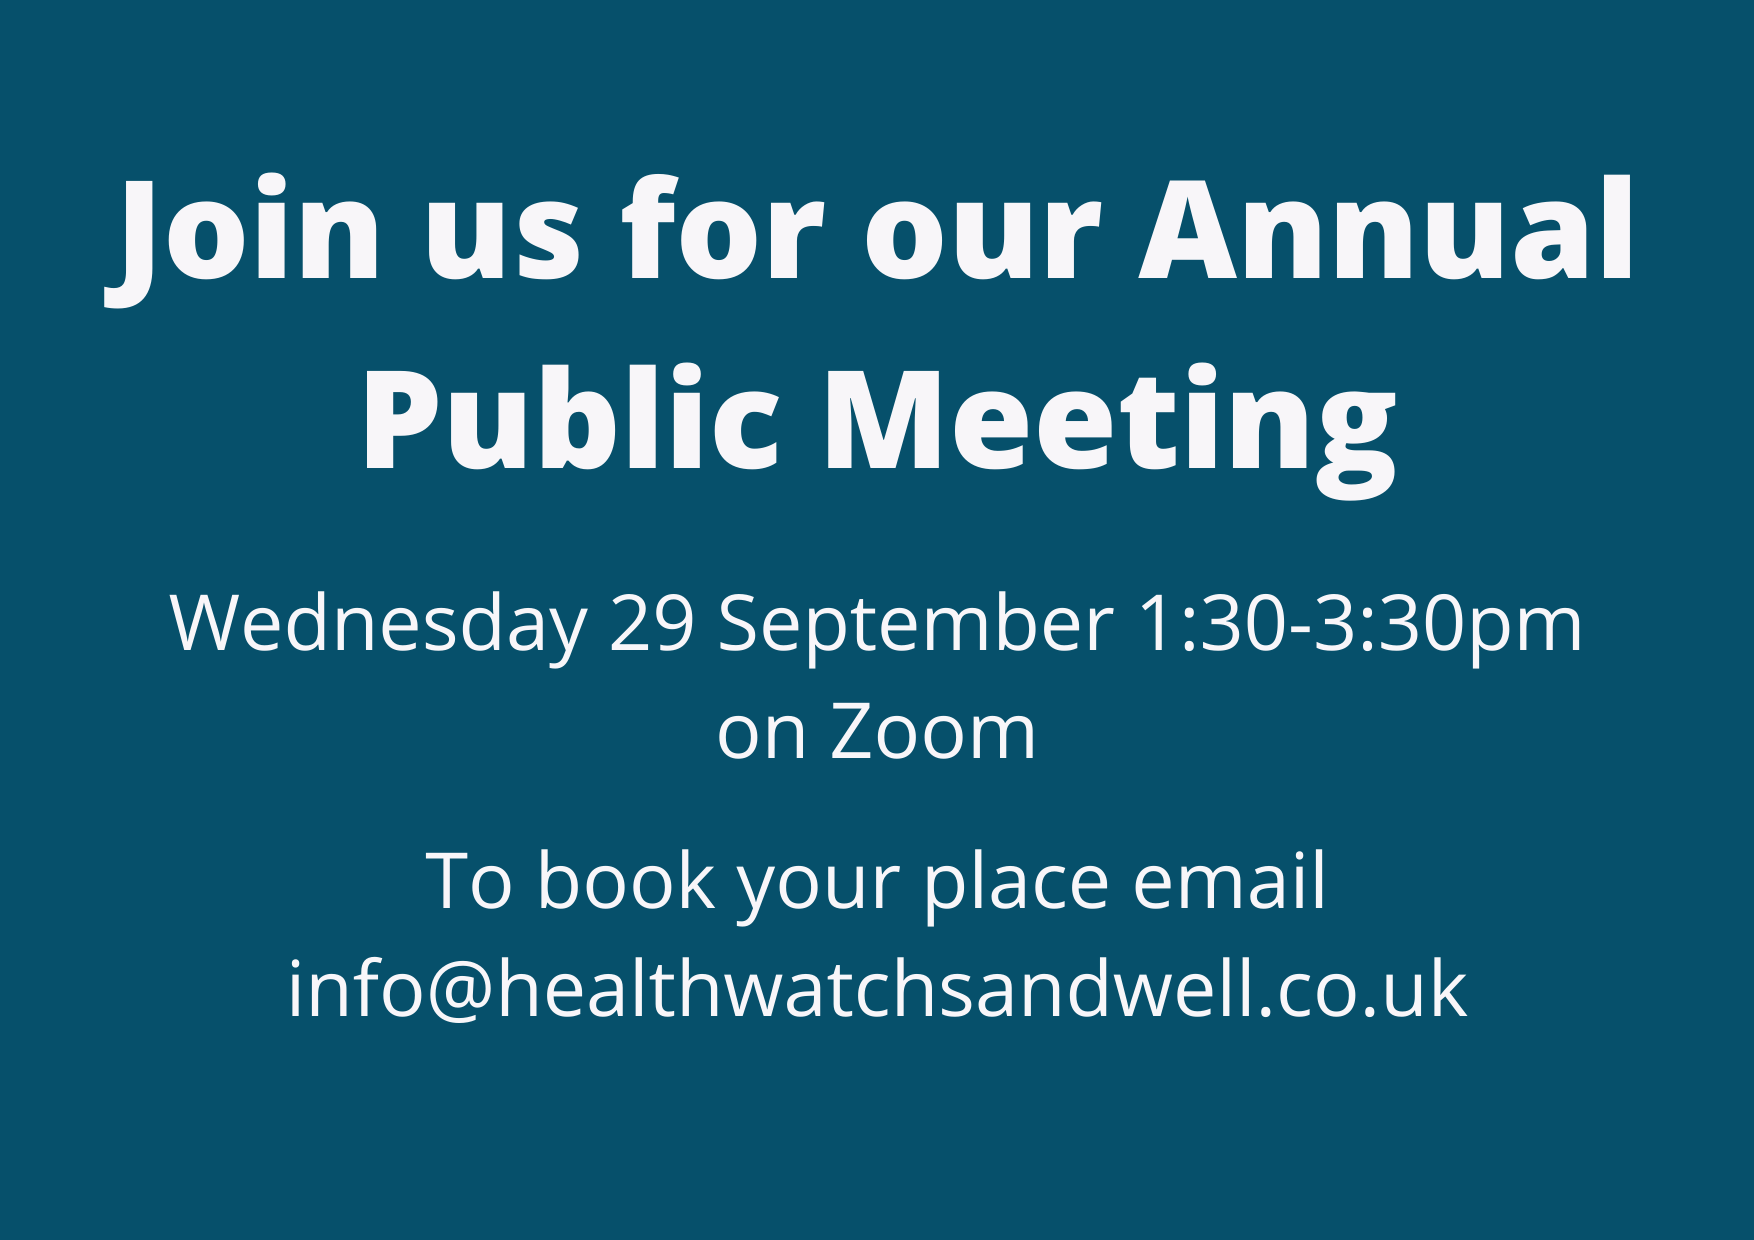 Join us for our Annual Public Meeting